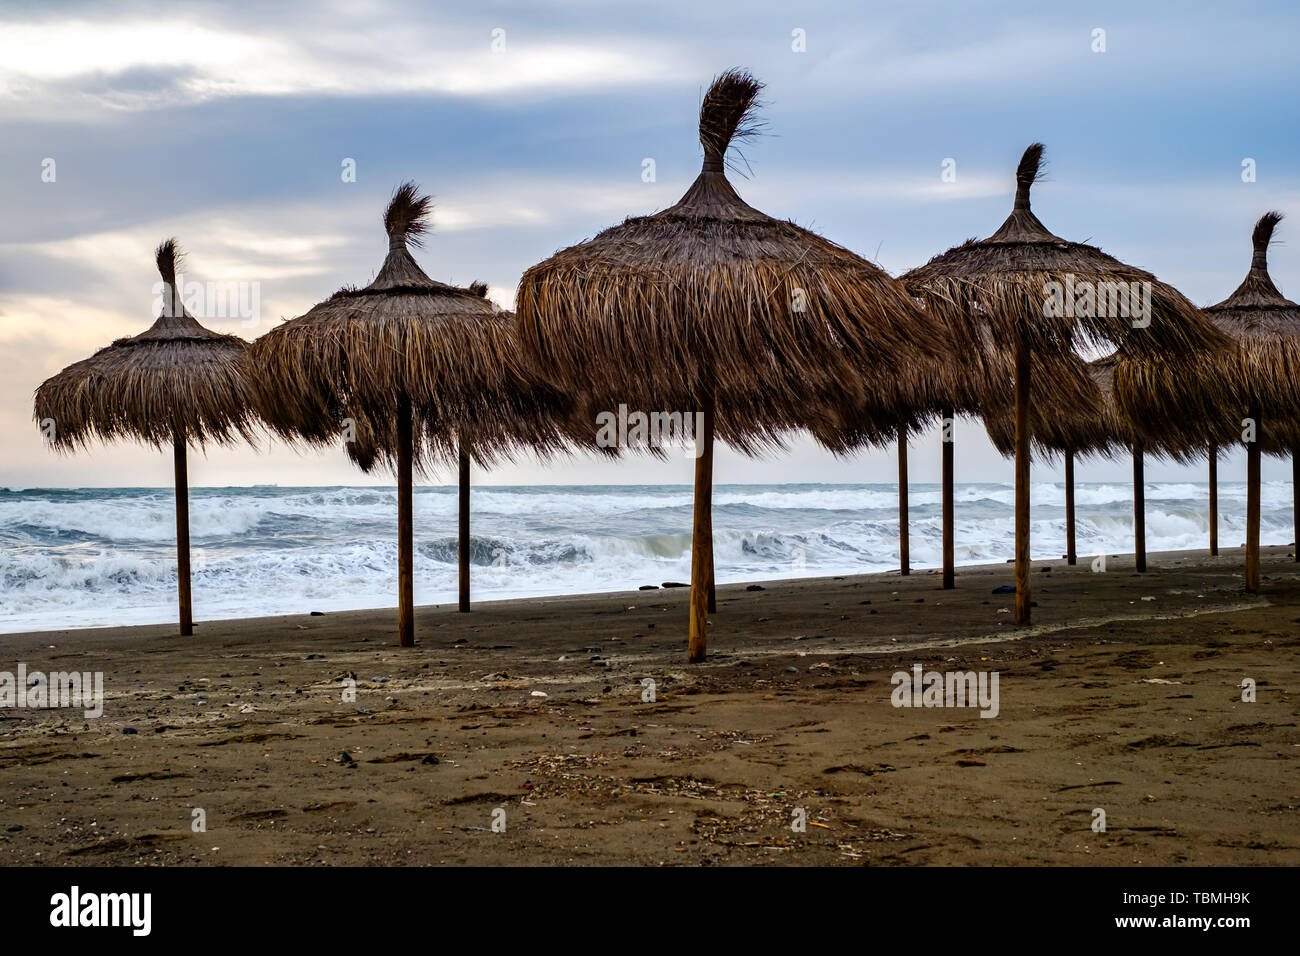 Straw umbrellas on the dirty beach on stormy day - Stock Image